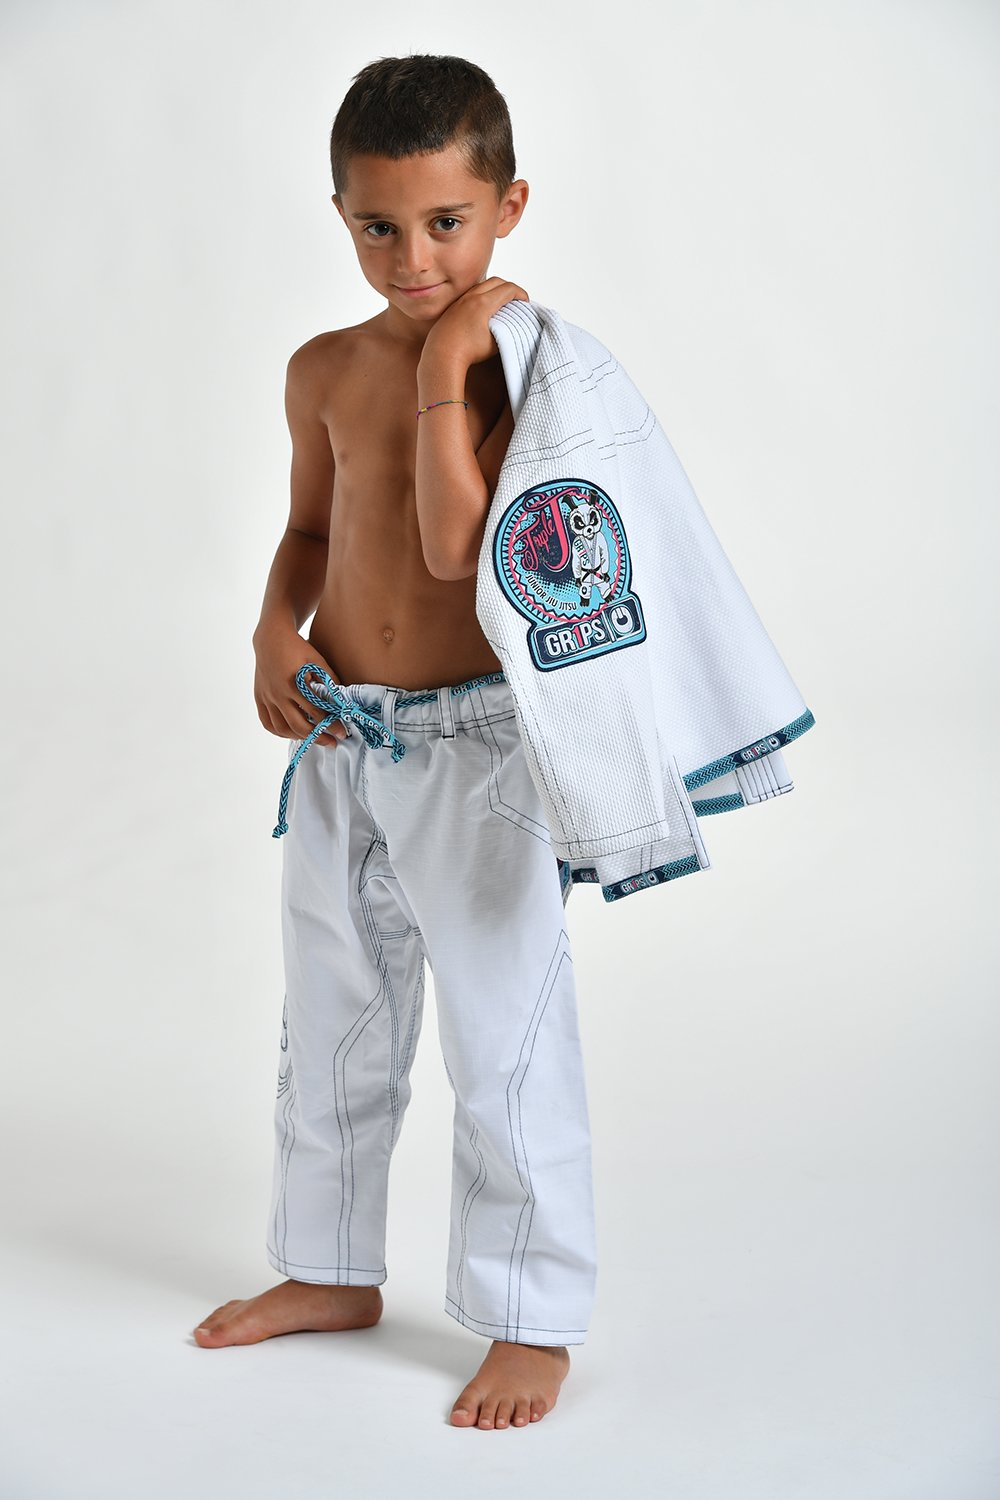 Gr1ps BJJ pak Kids Triple-J wit